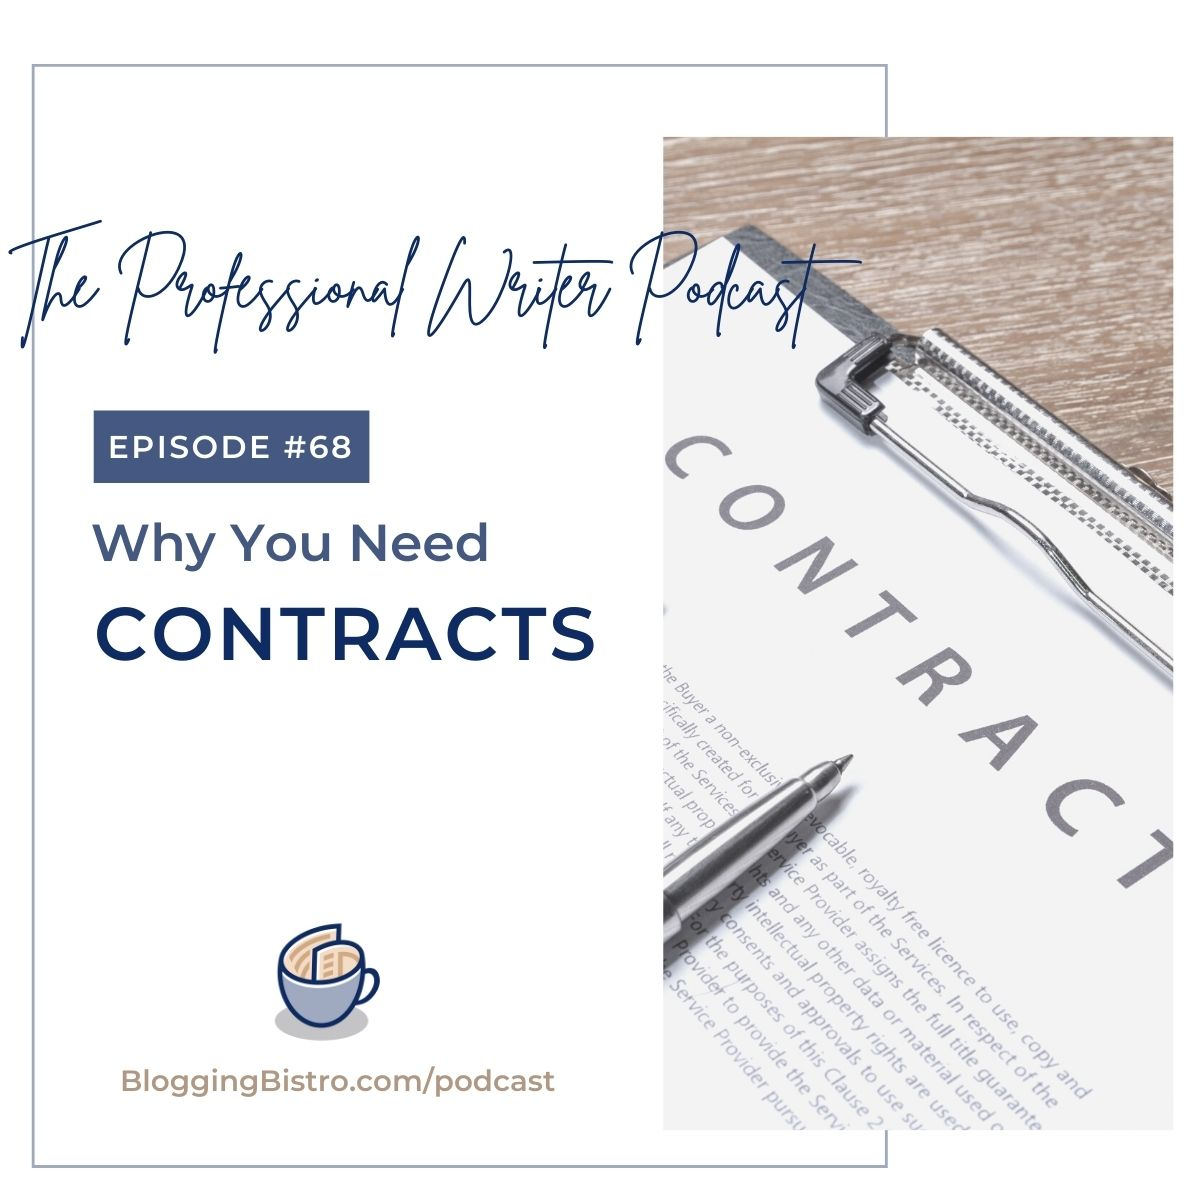 Why You Need Contracts